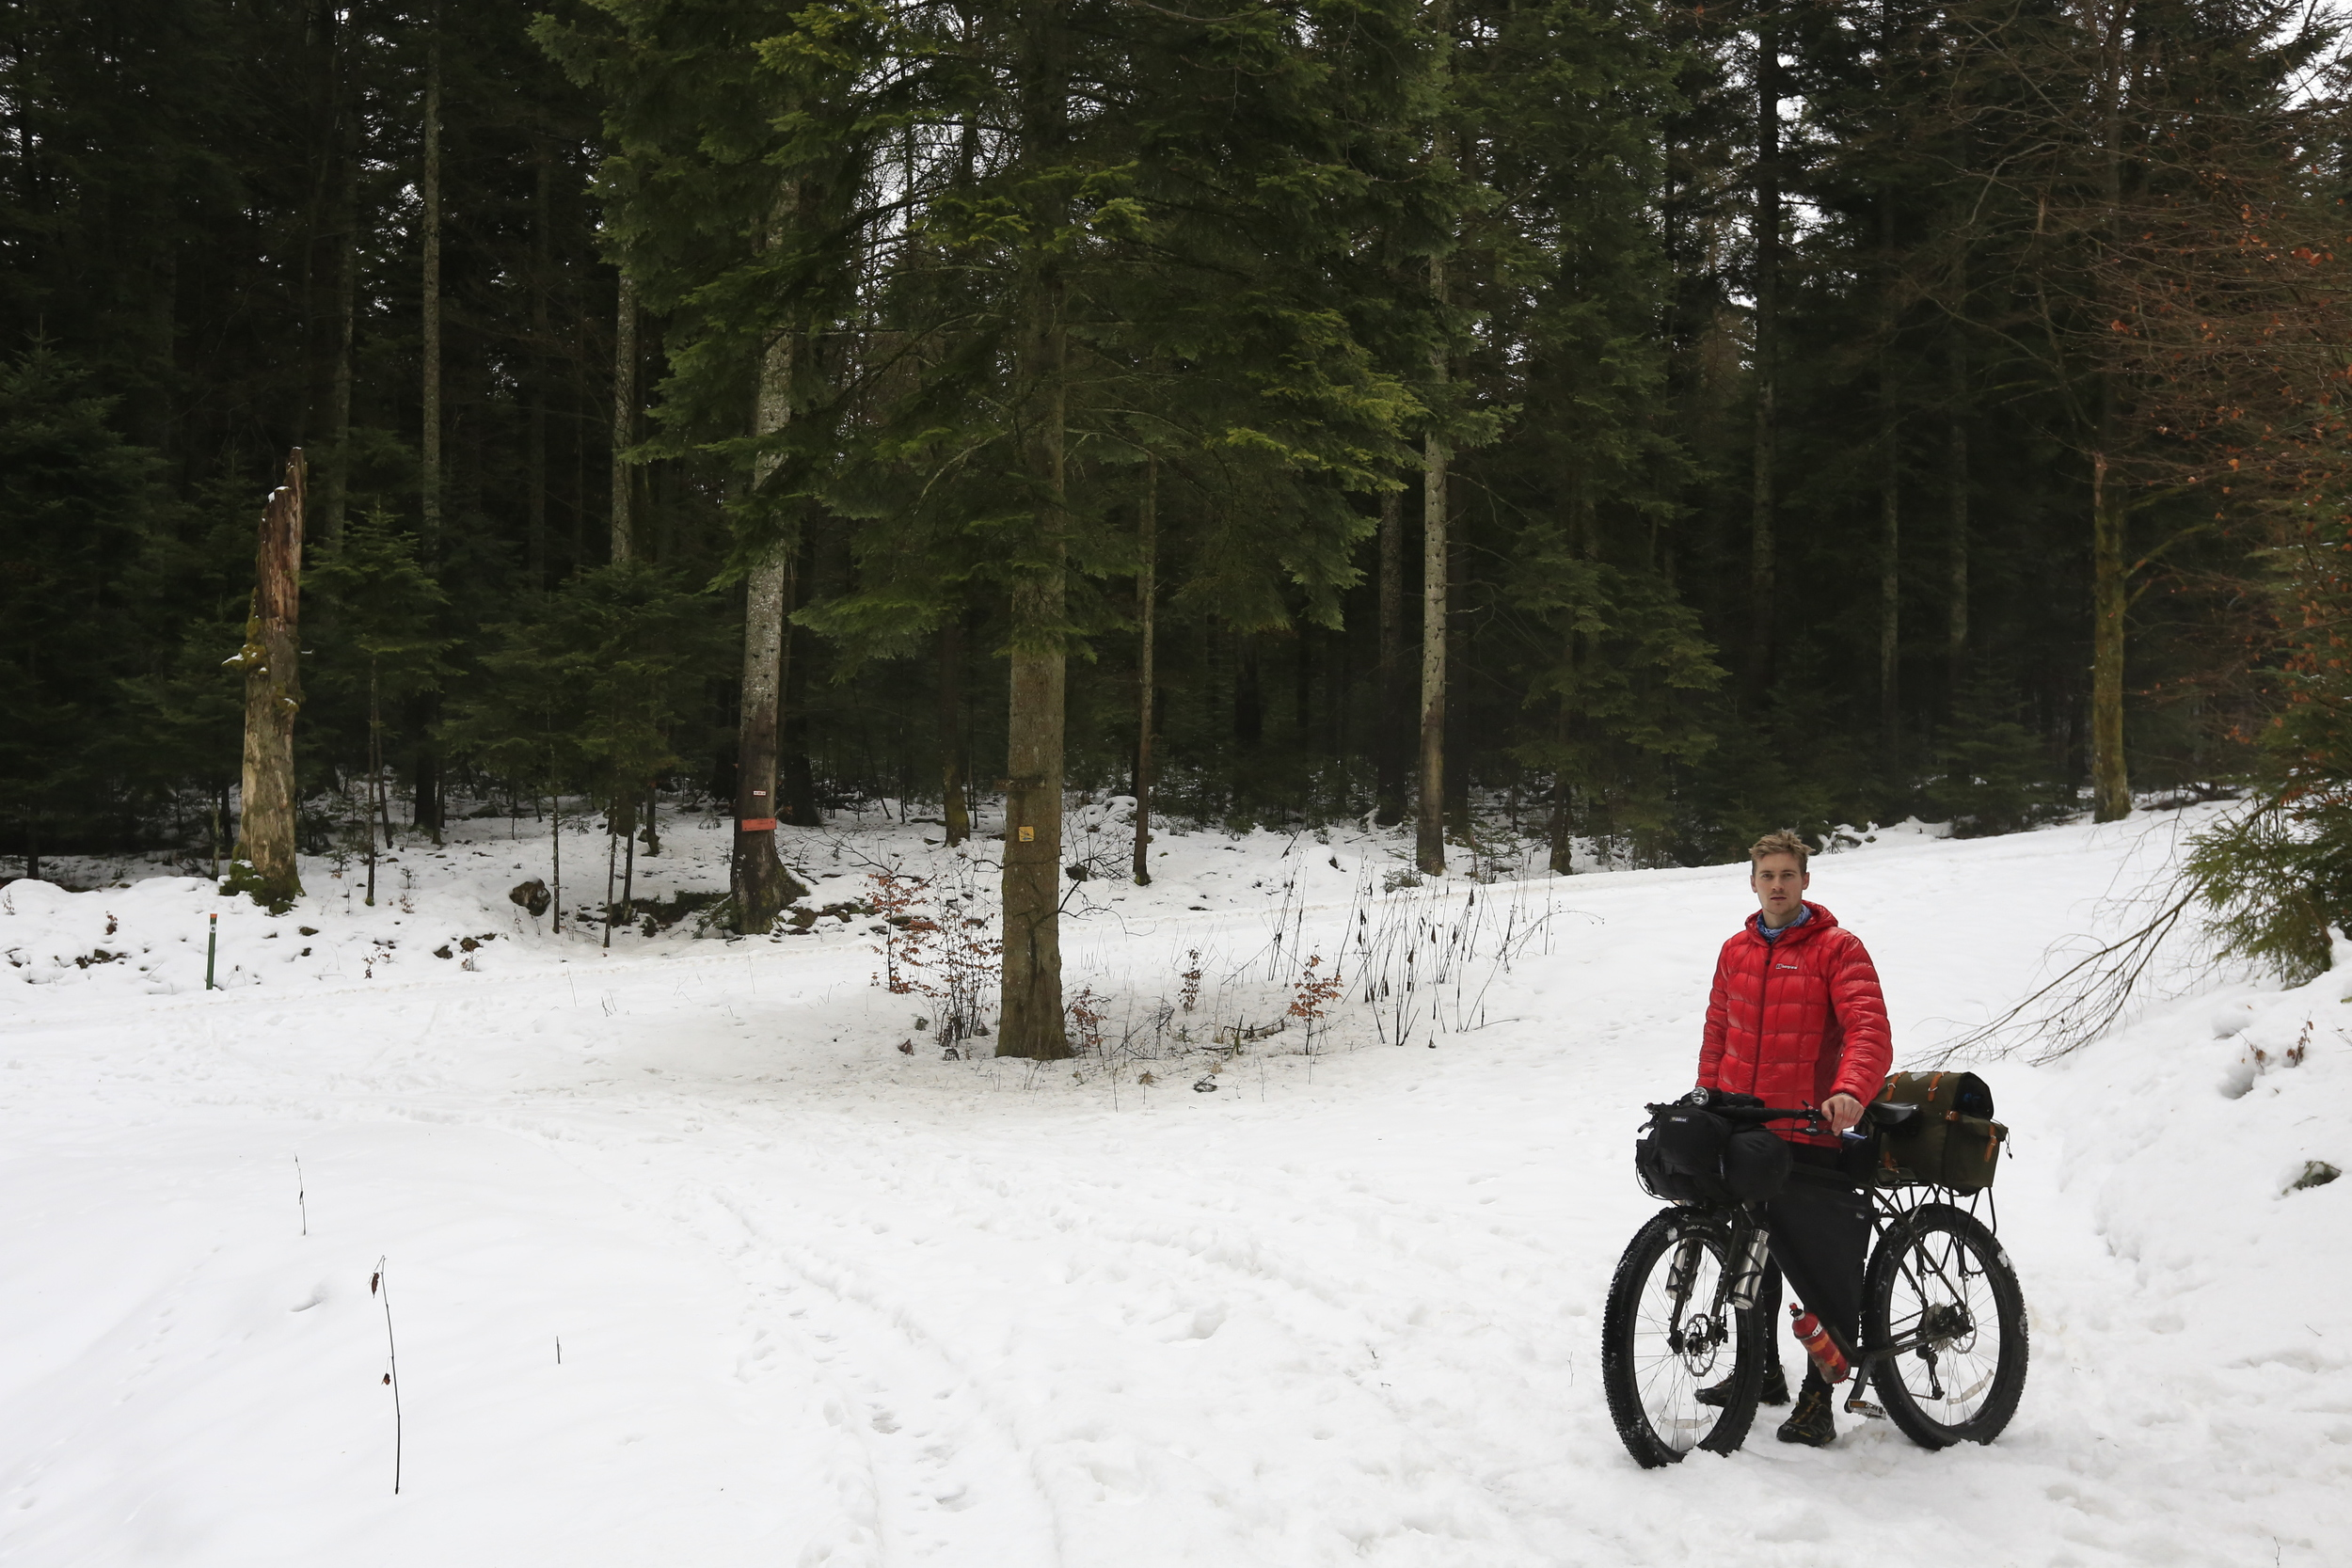 bikepacking, cycle touring, bicycle touring, bicycle touring apocalypse, germany, black forest, travel, adventure